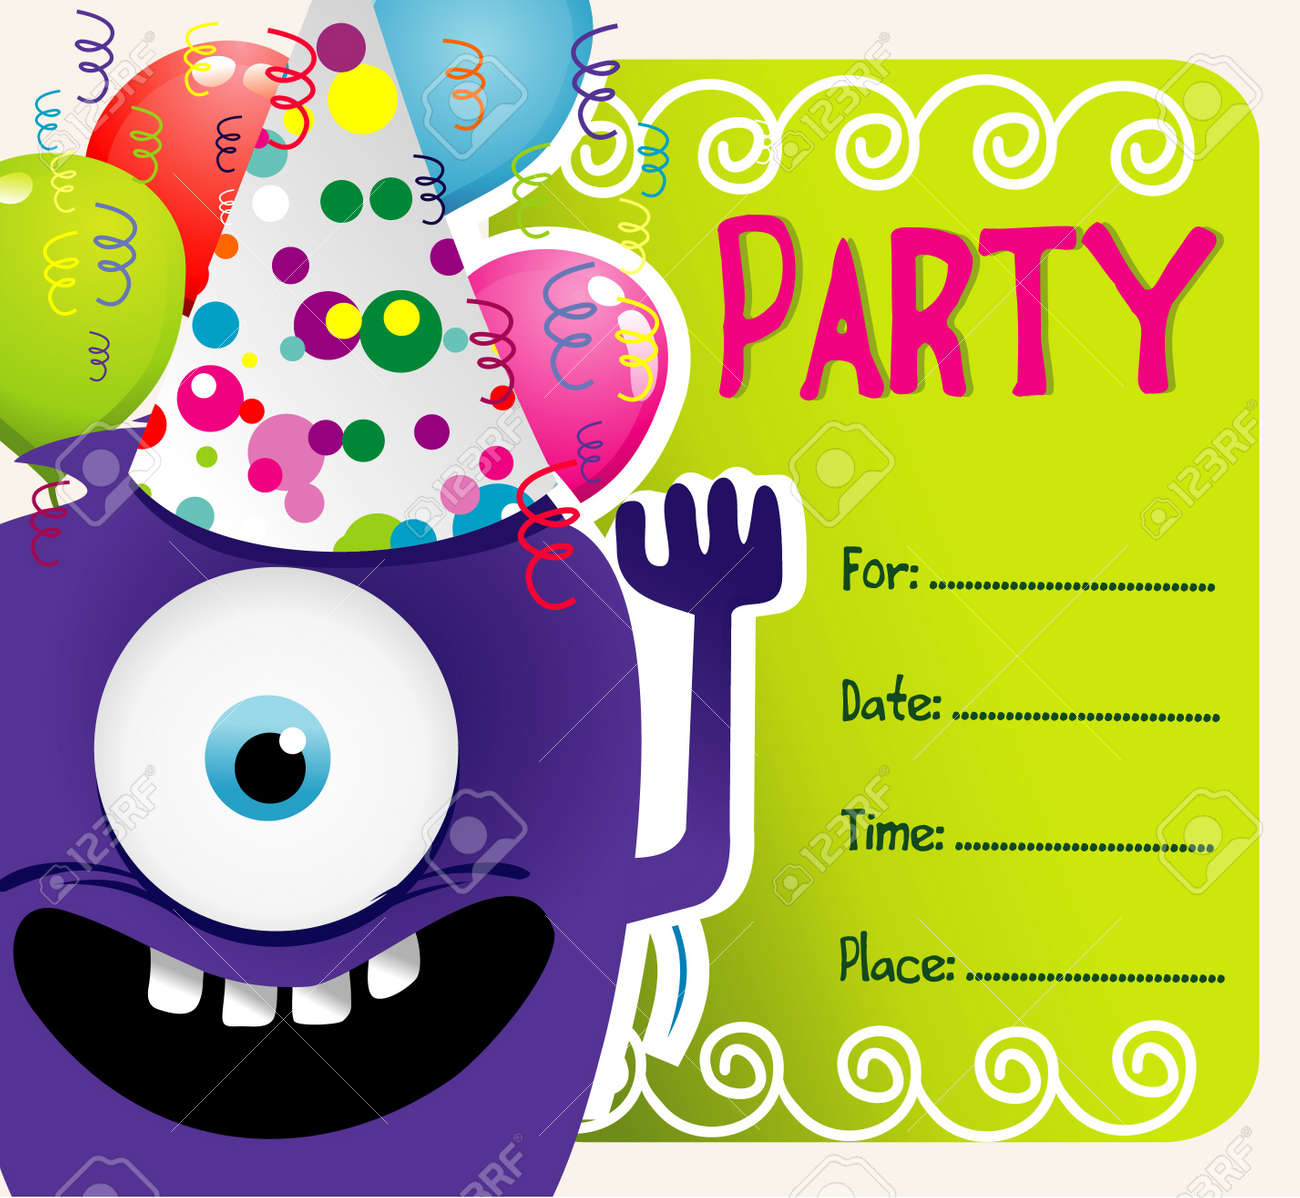 party vector invitation Stock Vector - 11033140